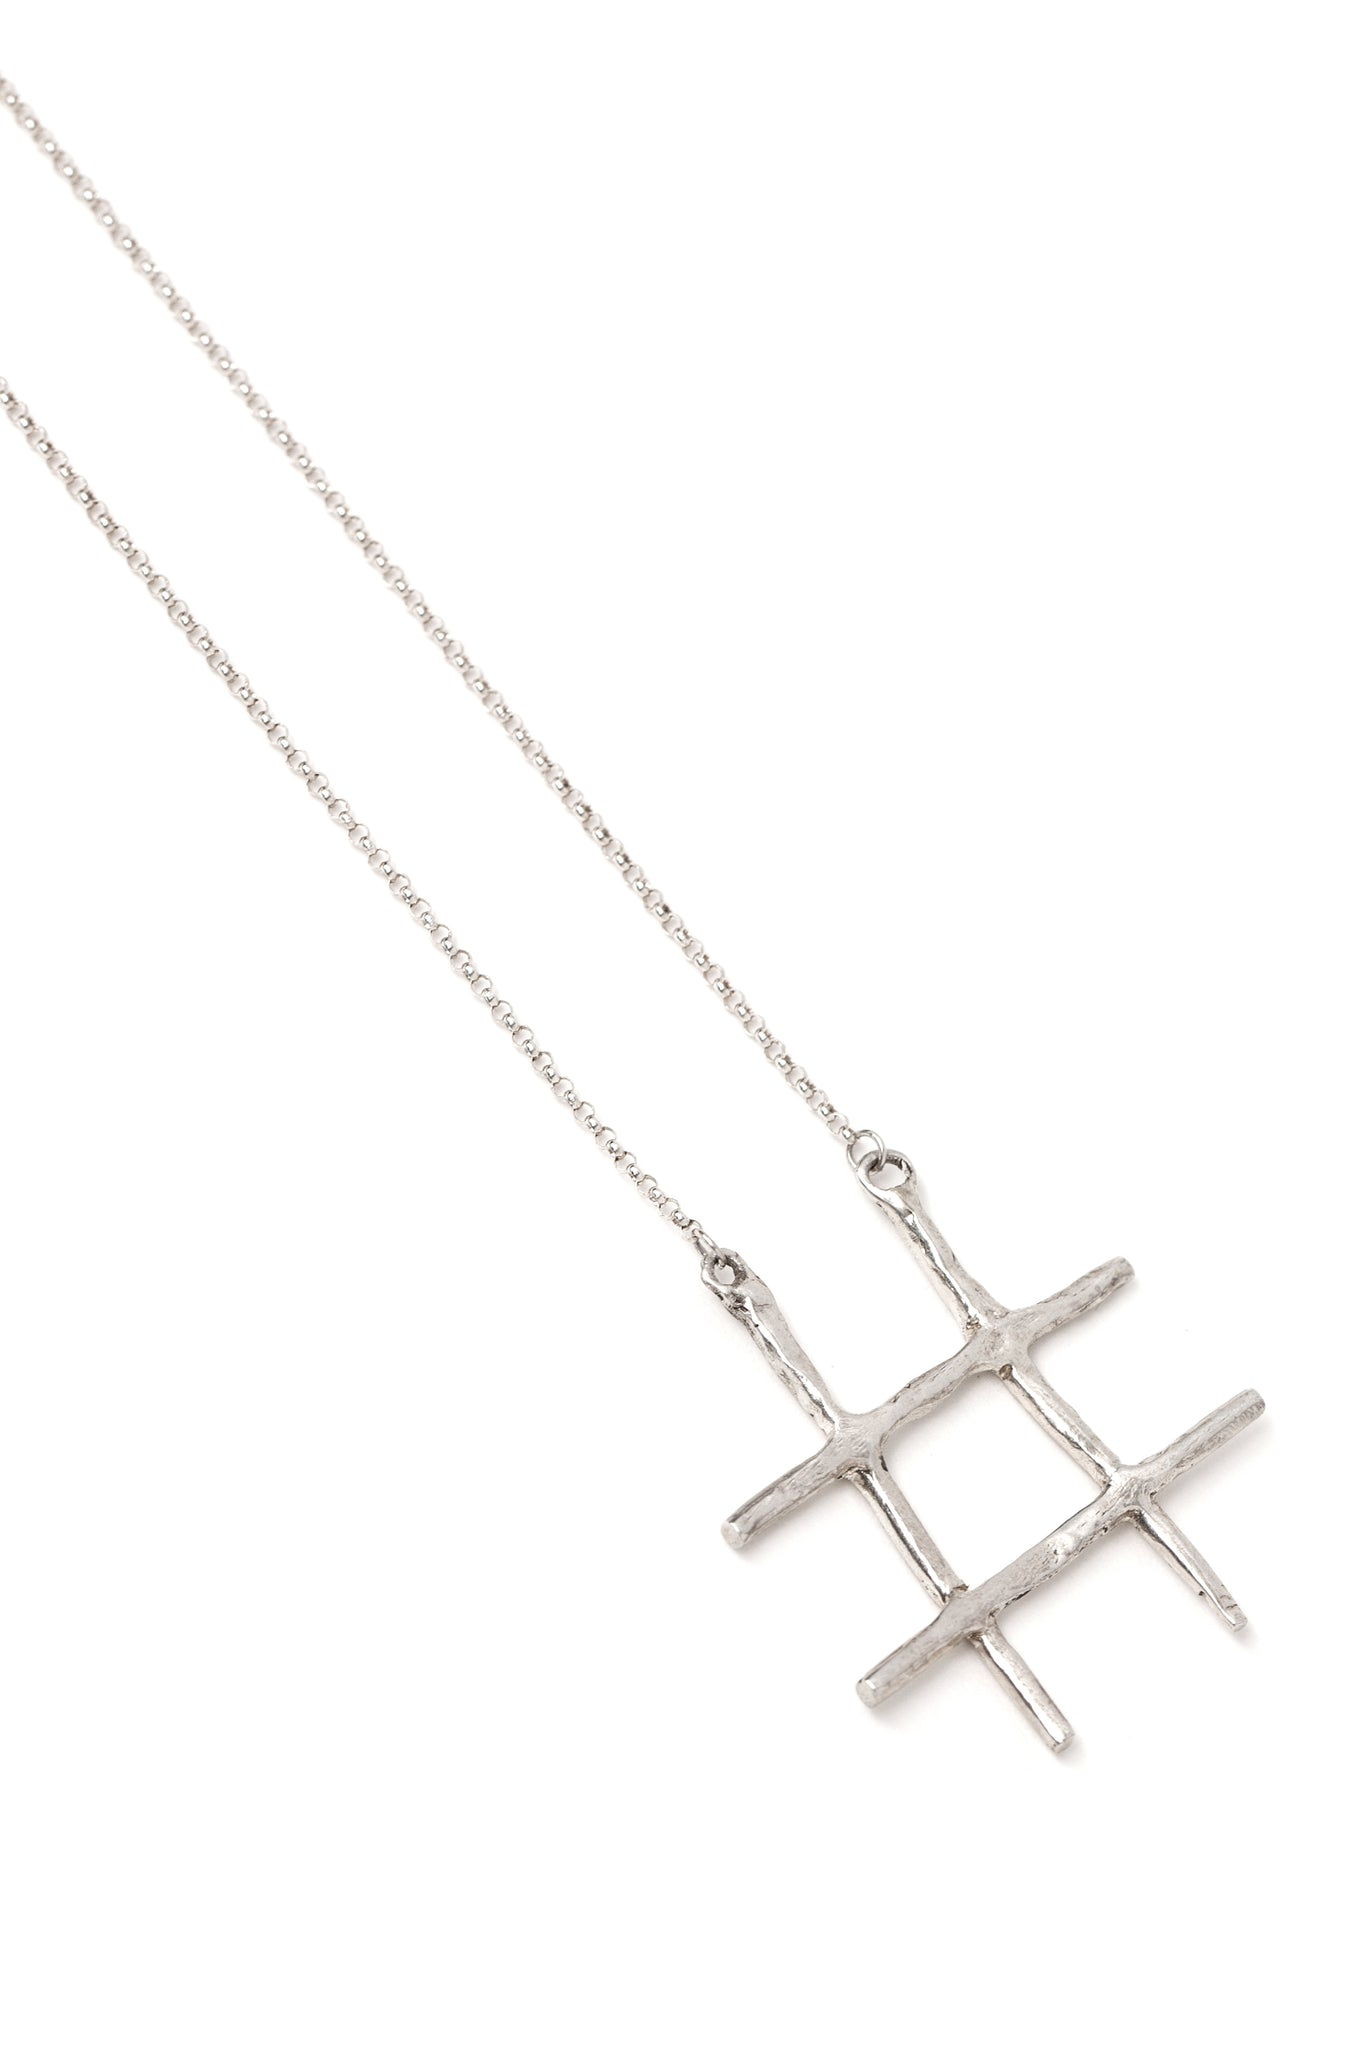 "CAT LUCK ""Tic-Tac-Toe"" Necklace"